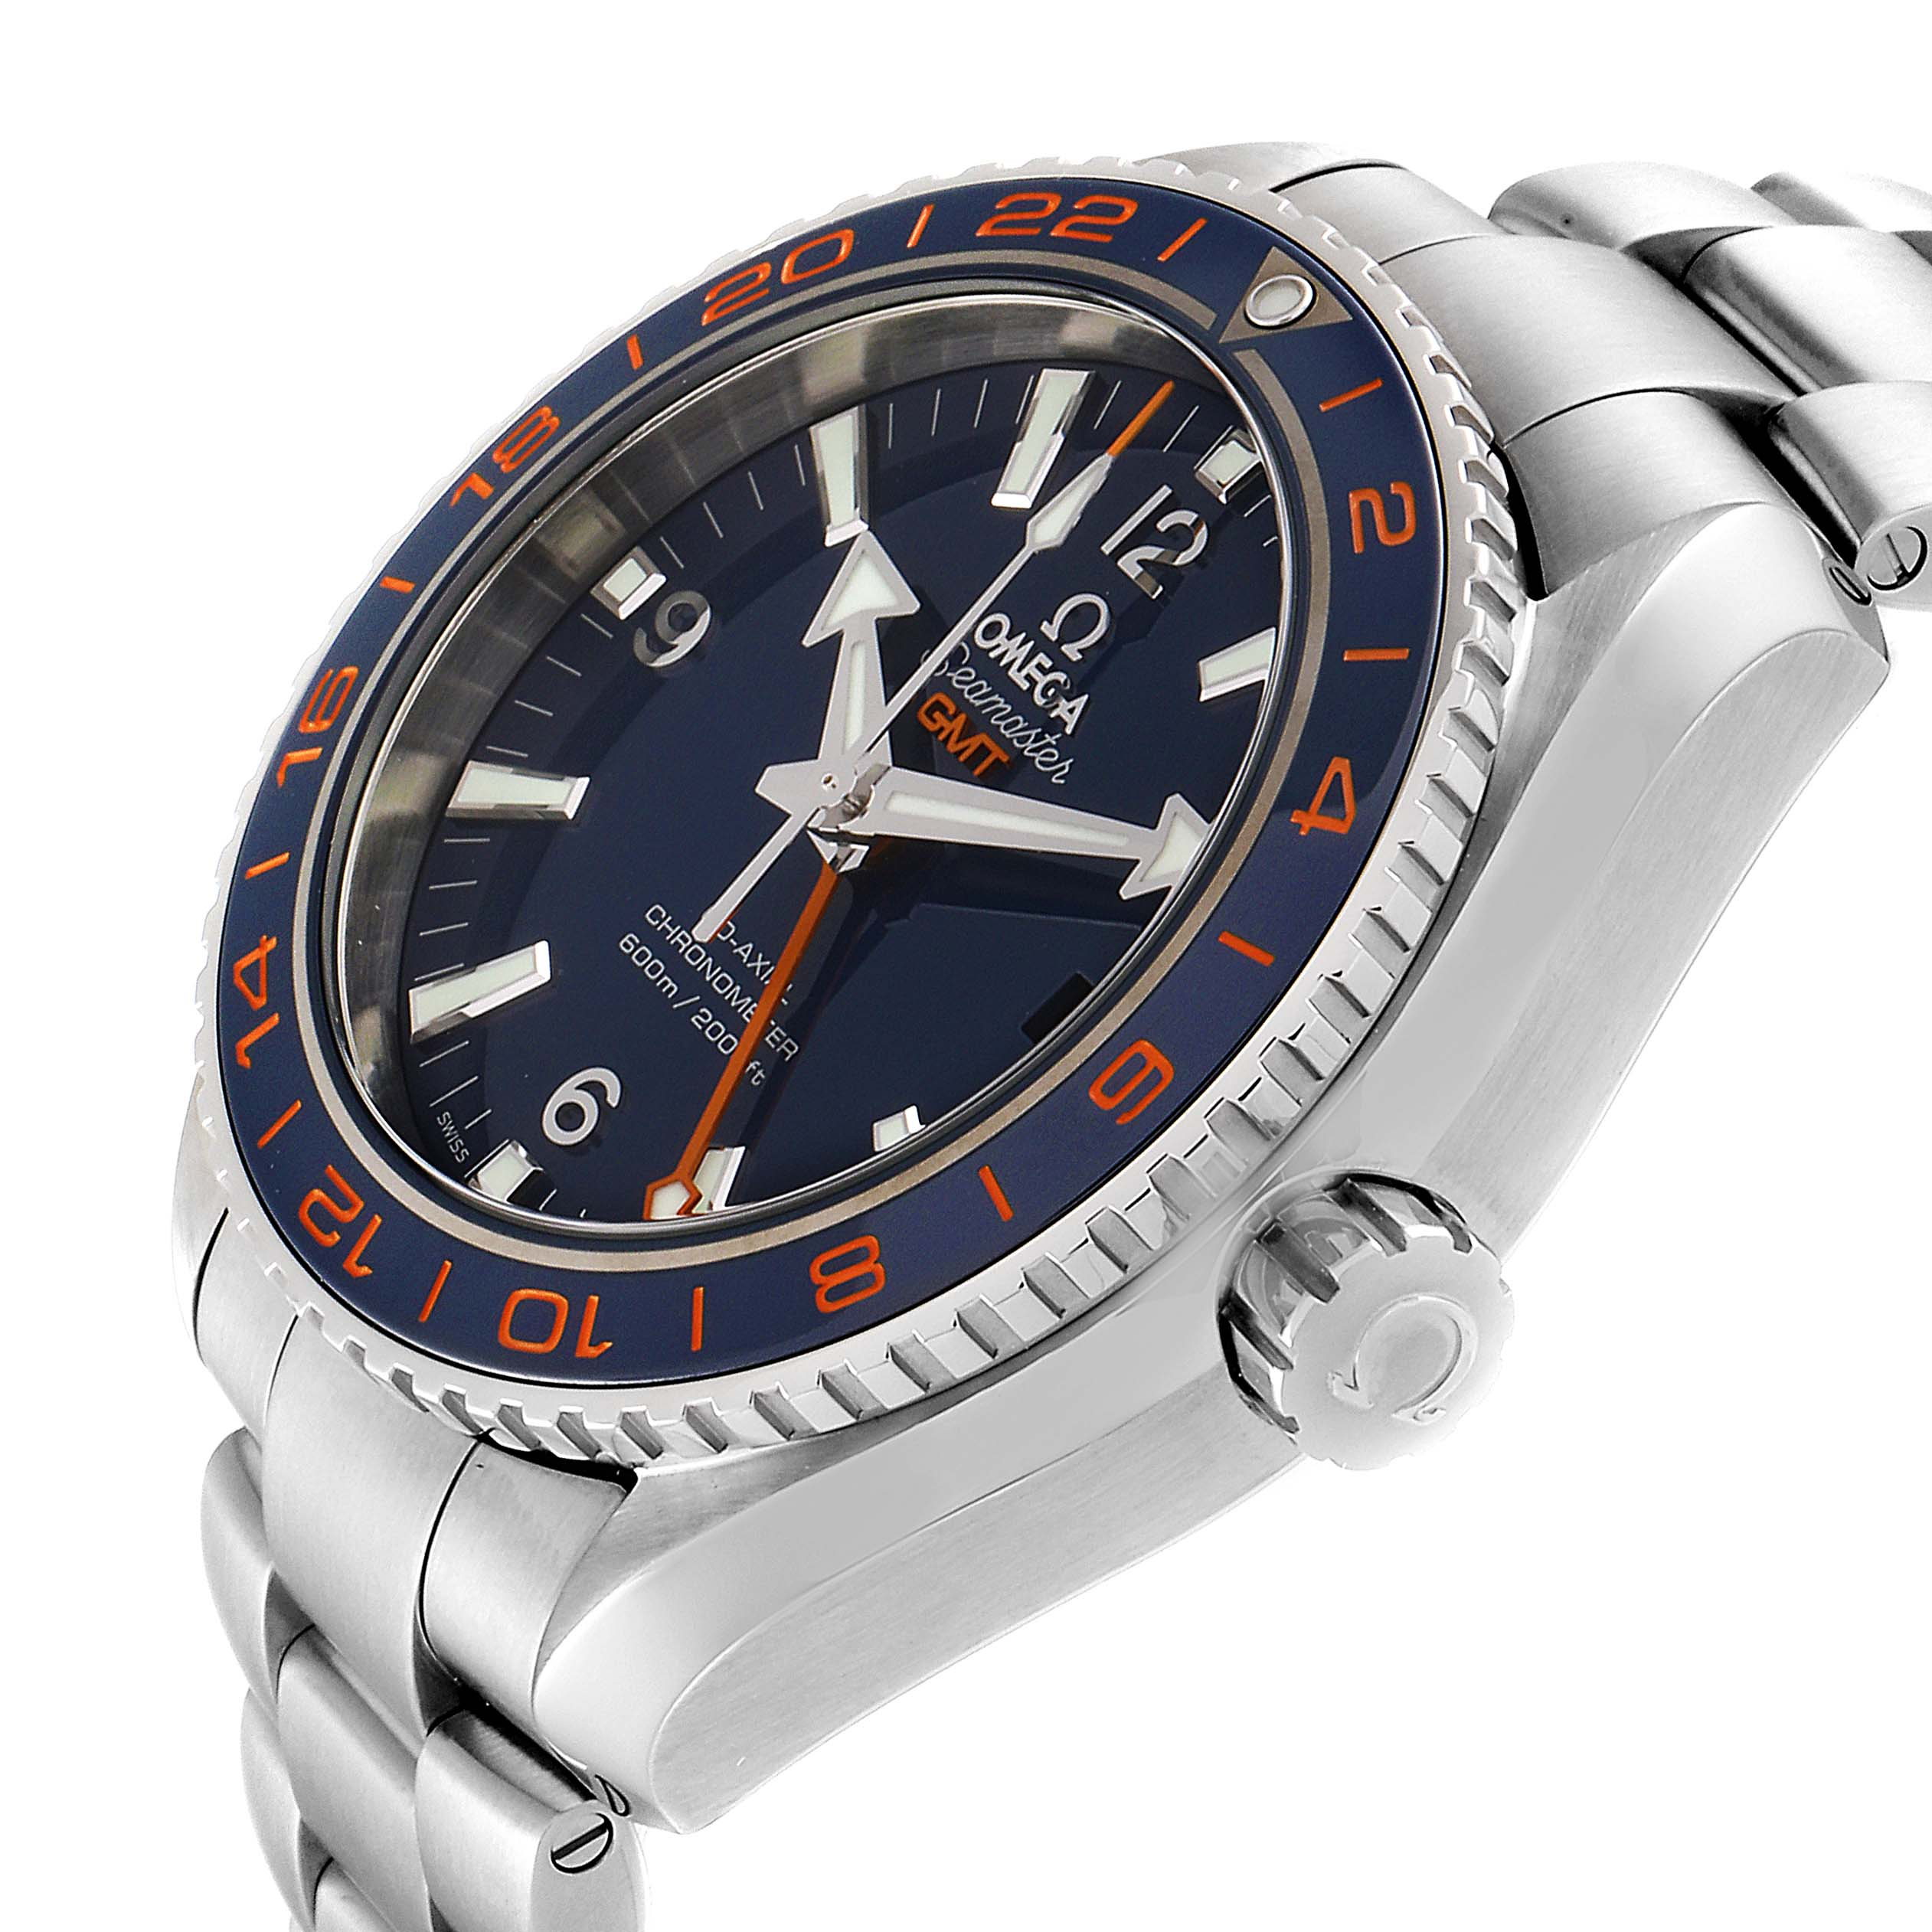 Omega Seamaster Planet Ocean GMT GoodPlanet Mens Watch 232.30.44.22.03.001 SwissWatchExpo